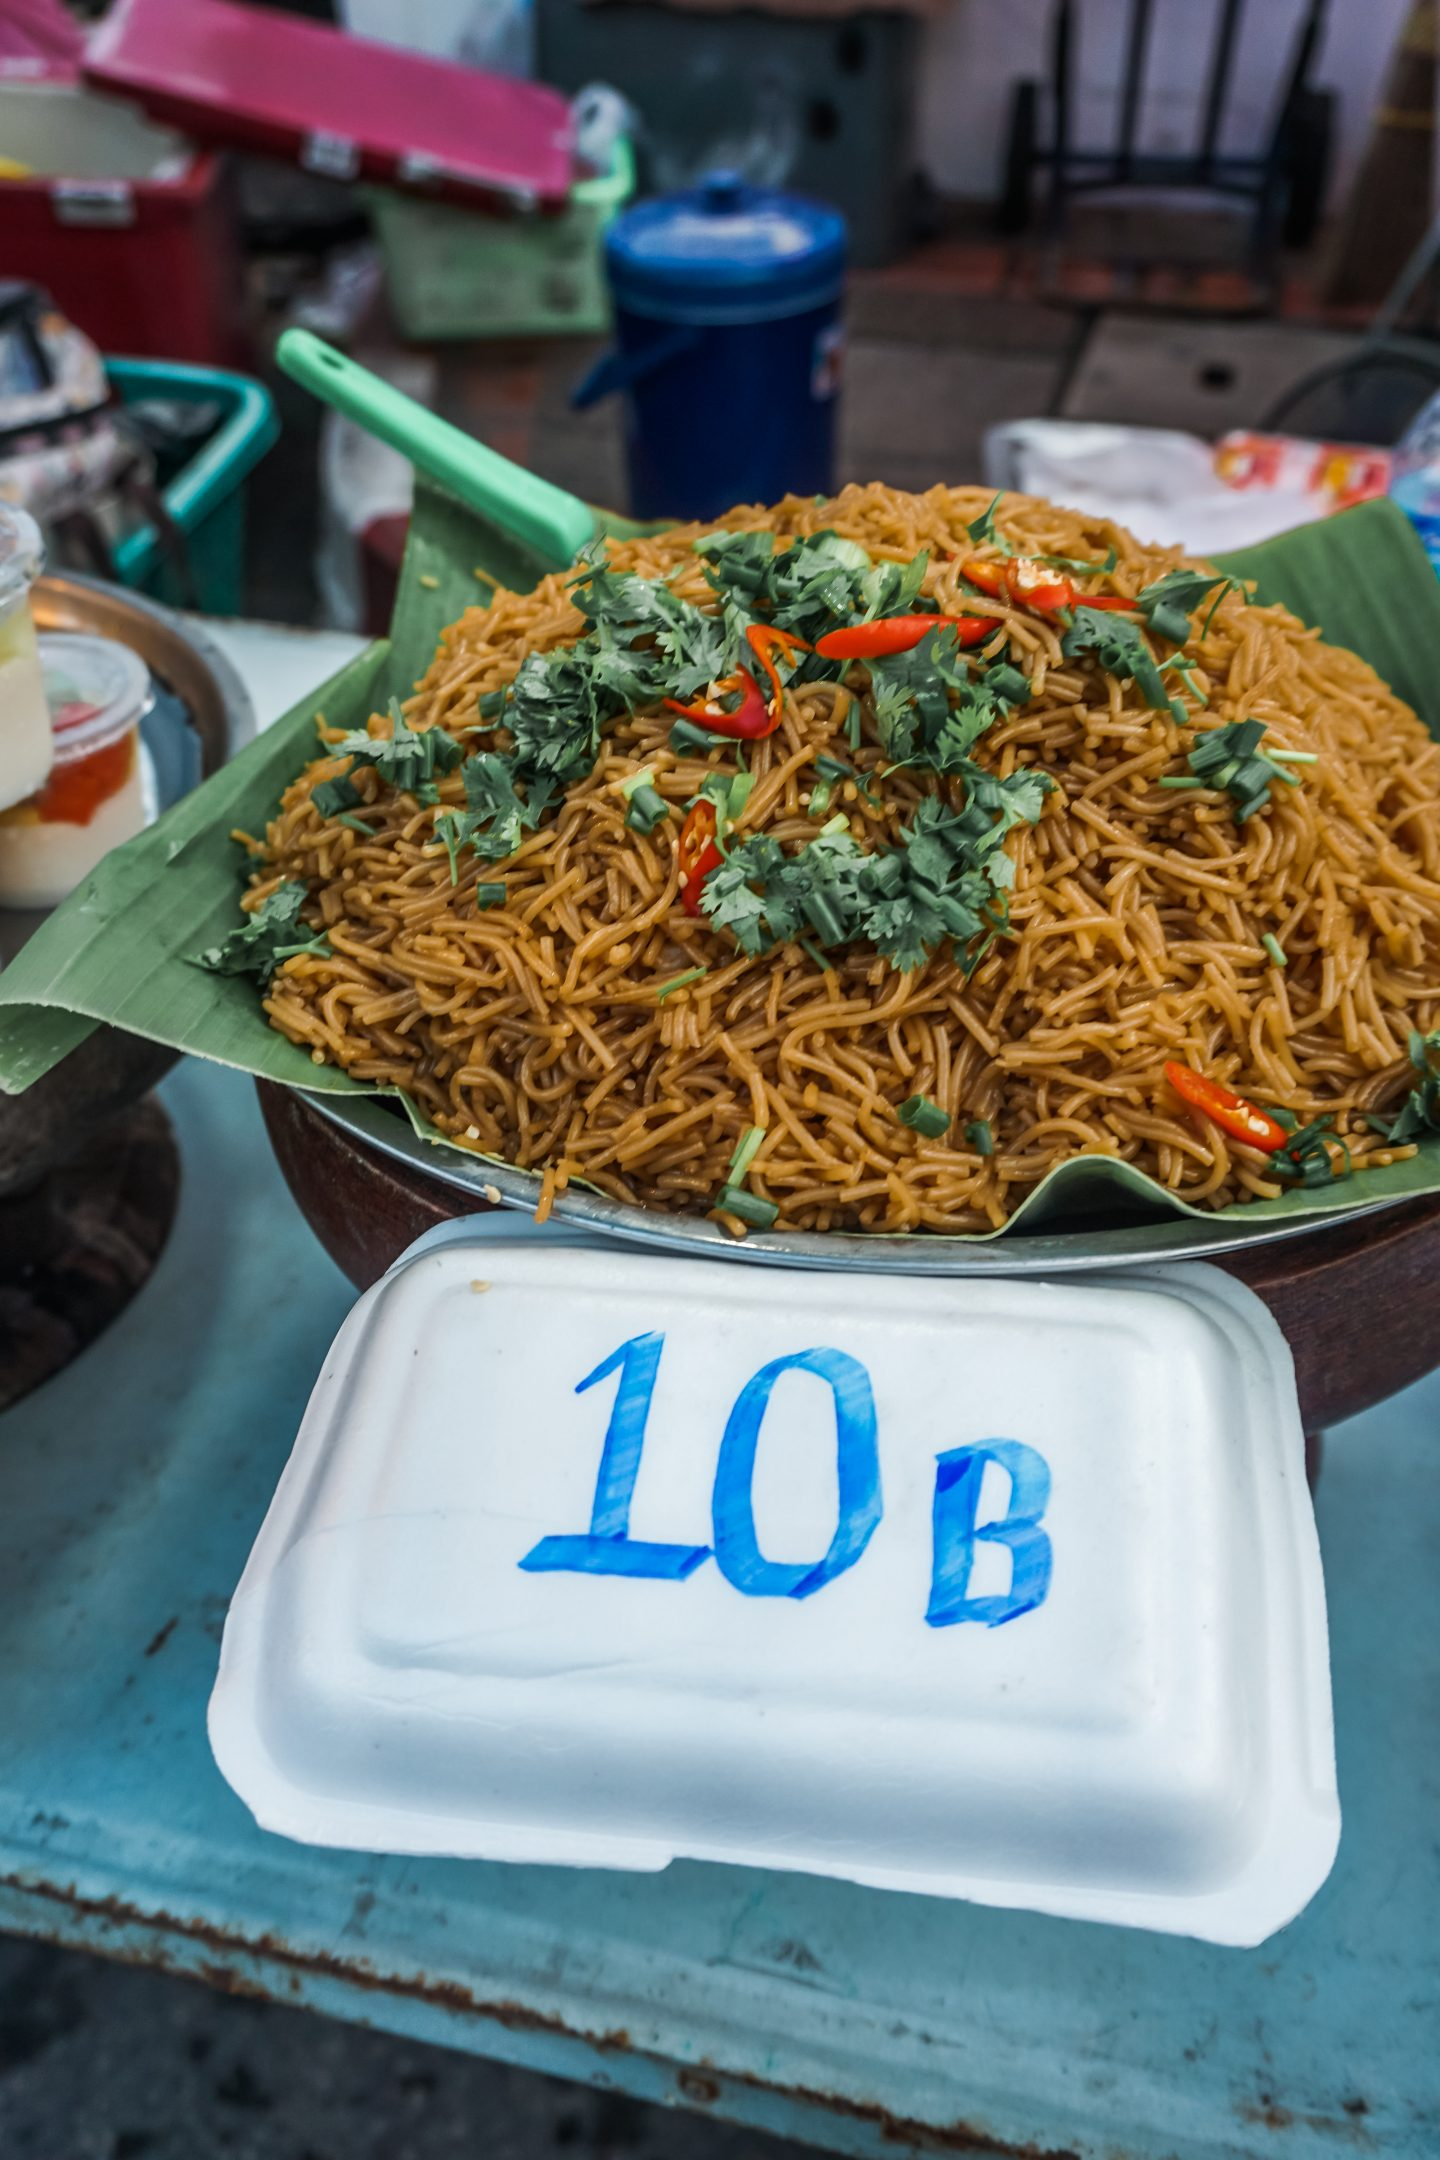 Eating in thailand on a budget - noodles for 10 THB